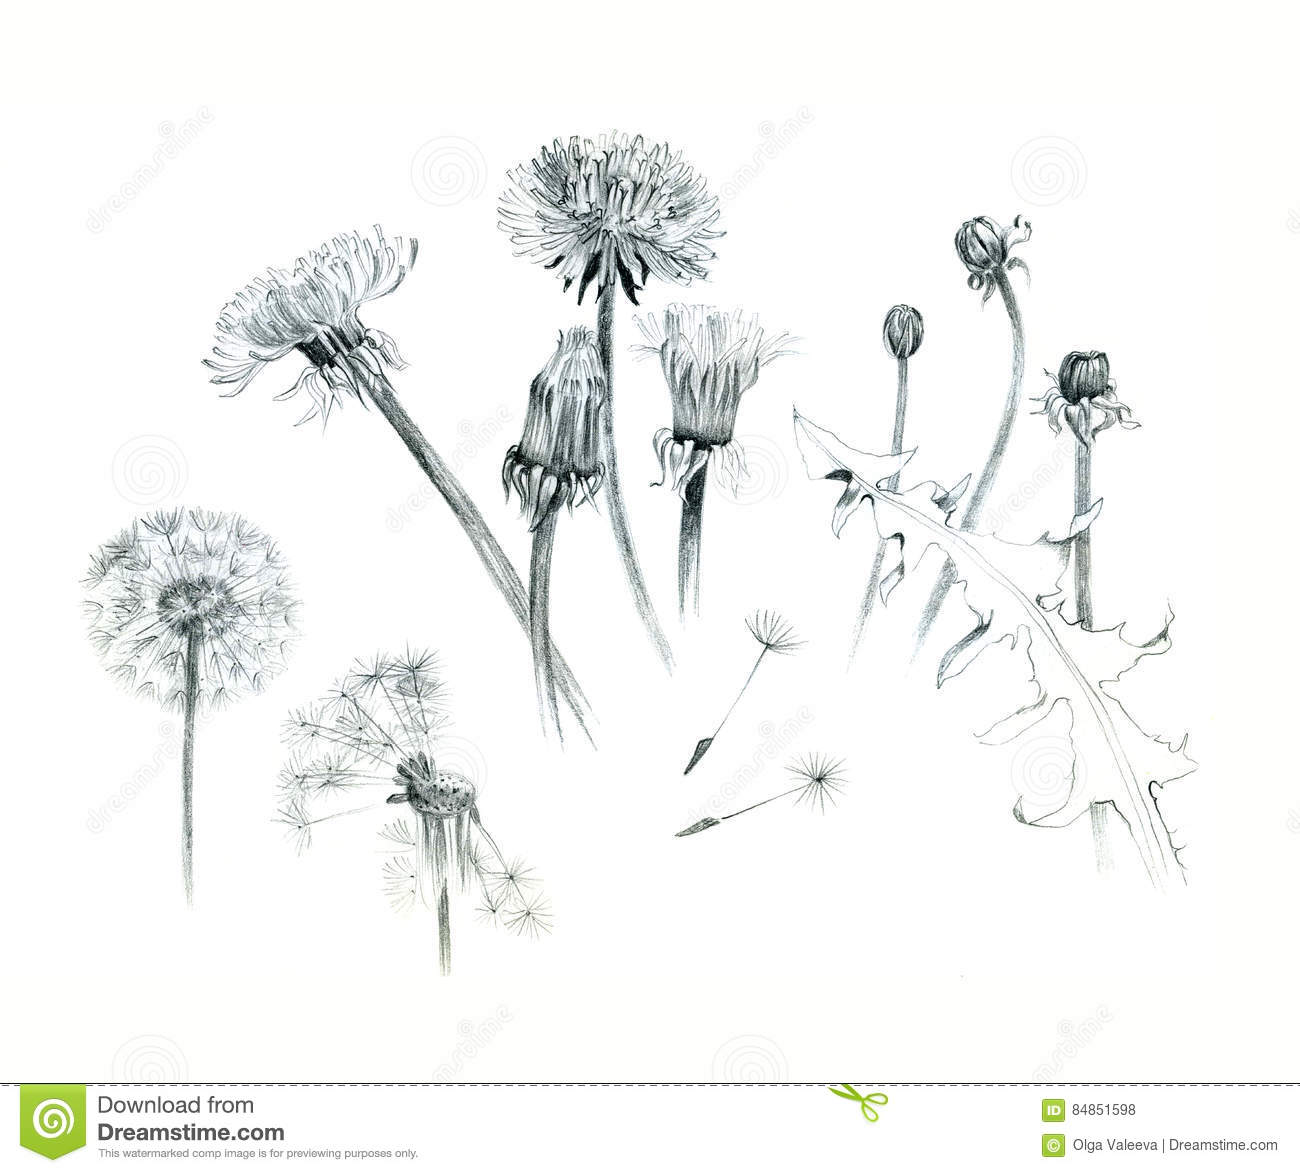 844436 Need A High Sierra Disk Image besides Lightbulb Creative Symbol 726752 moreover Ugm Vi likewise Aboriginal Trail besides Stock Illustration Hand Drawn Dandelions Illustration Graphite Isolated White Background Different Stages Dandelion Image84851598. on head plant